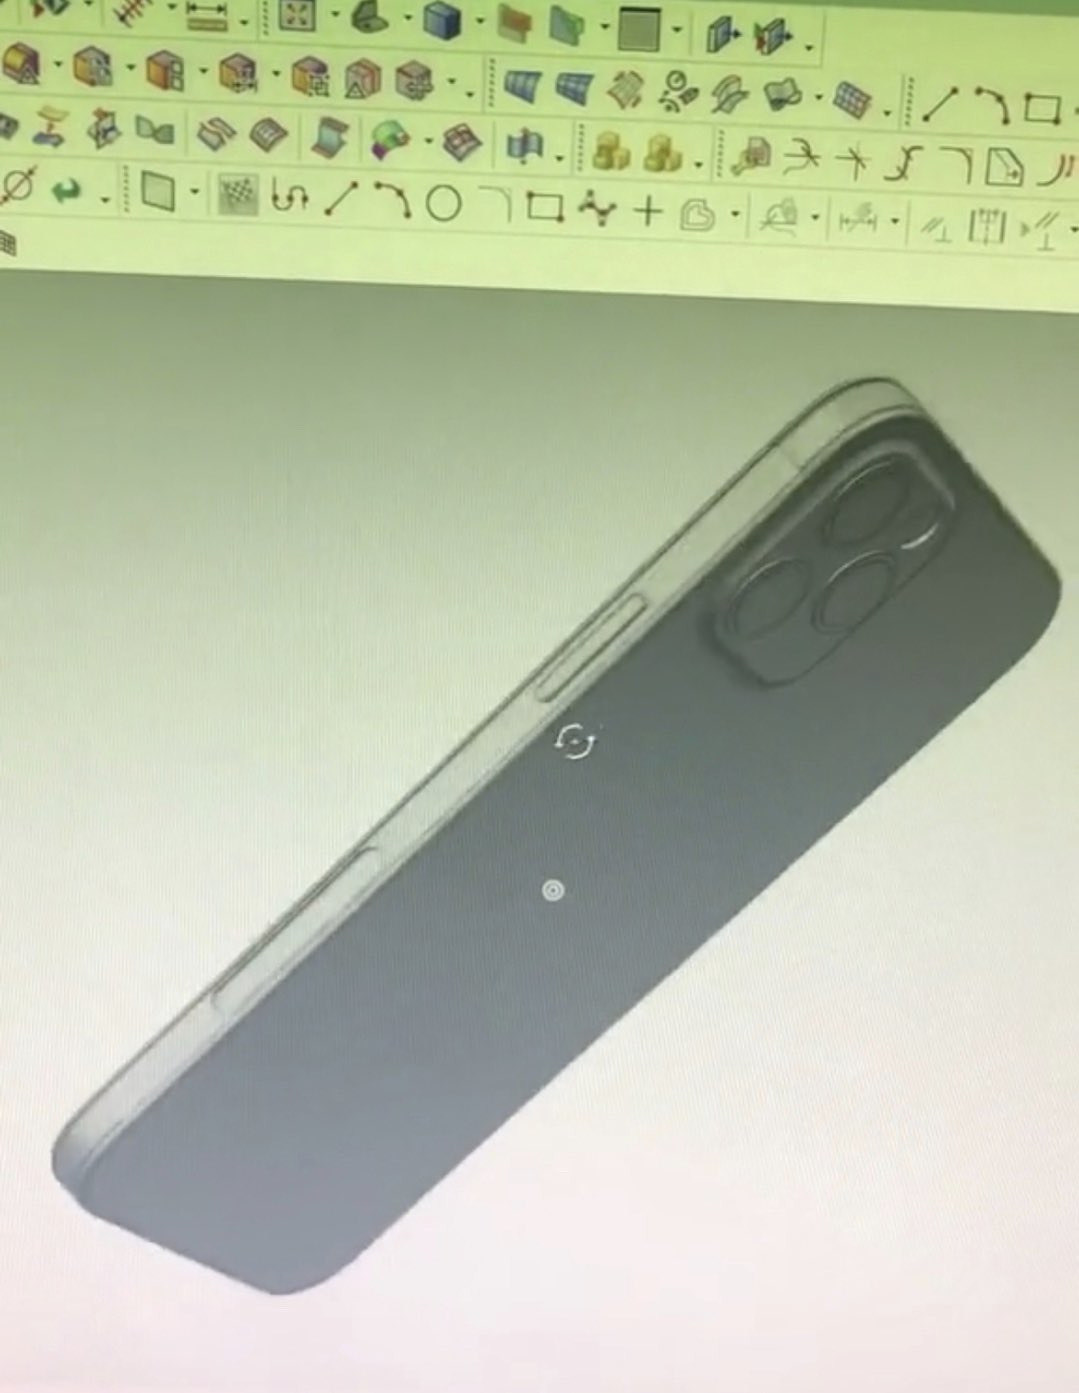 New iPhone 12 leak suggests a more angular design